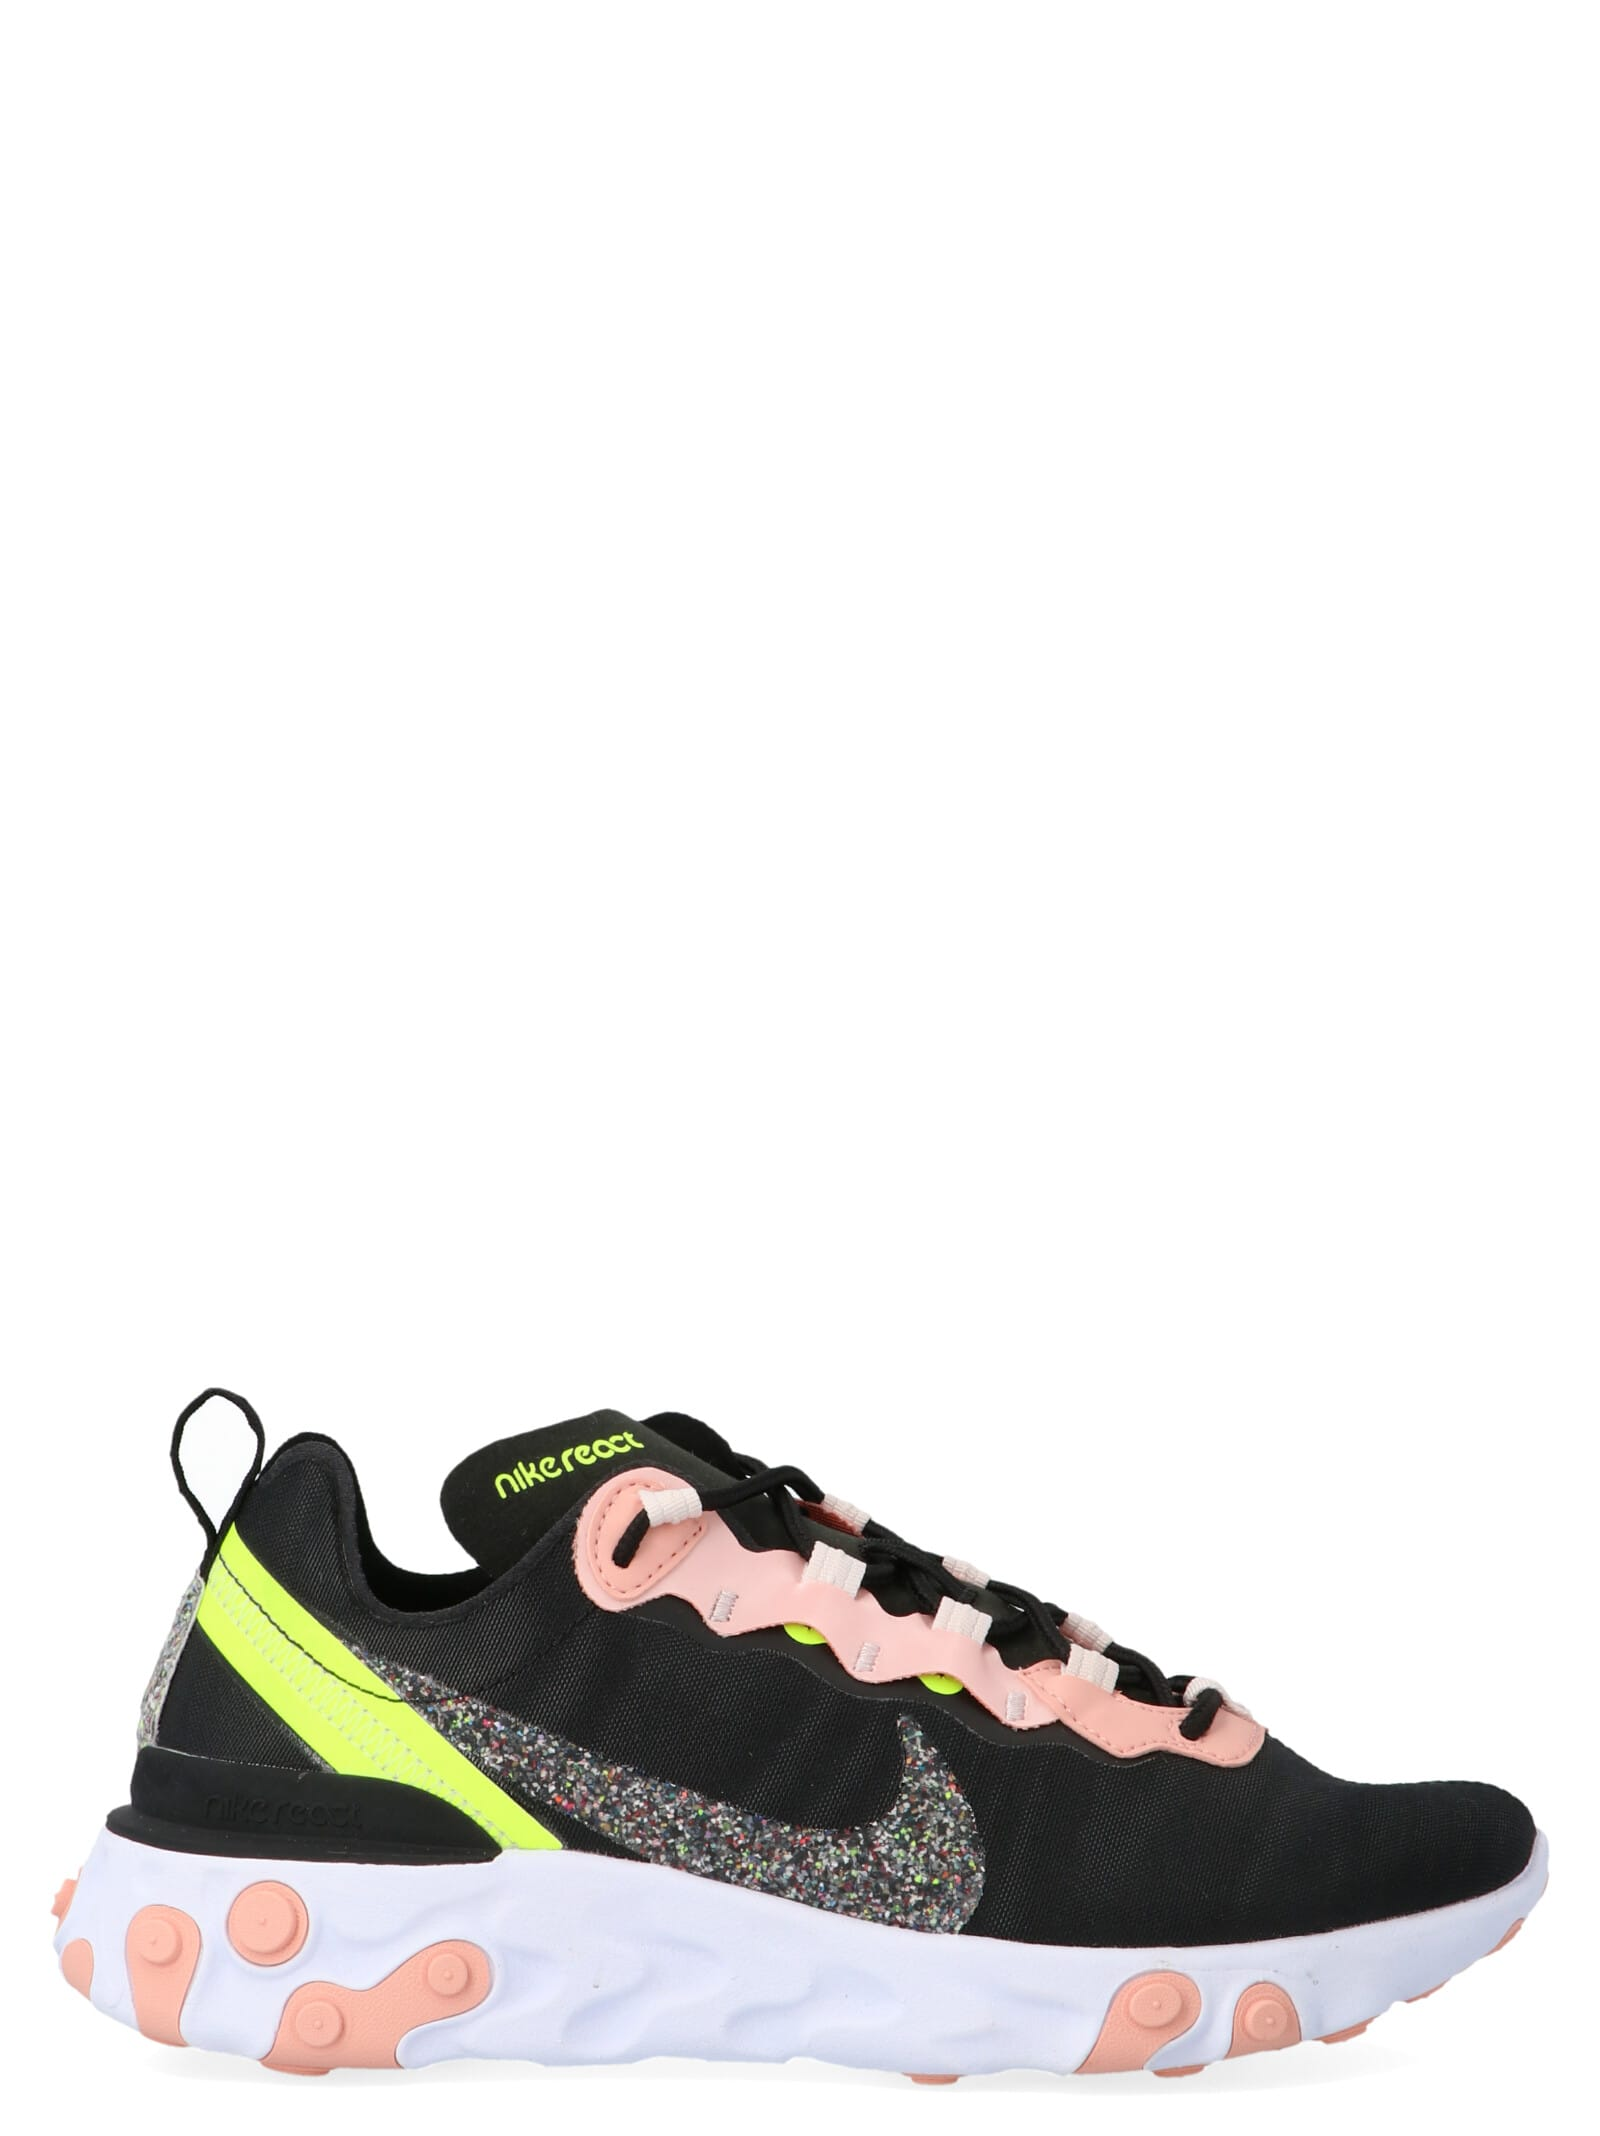 Nike Shoes REACT ELEMENT 55 PRM SHOES